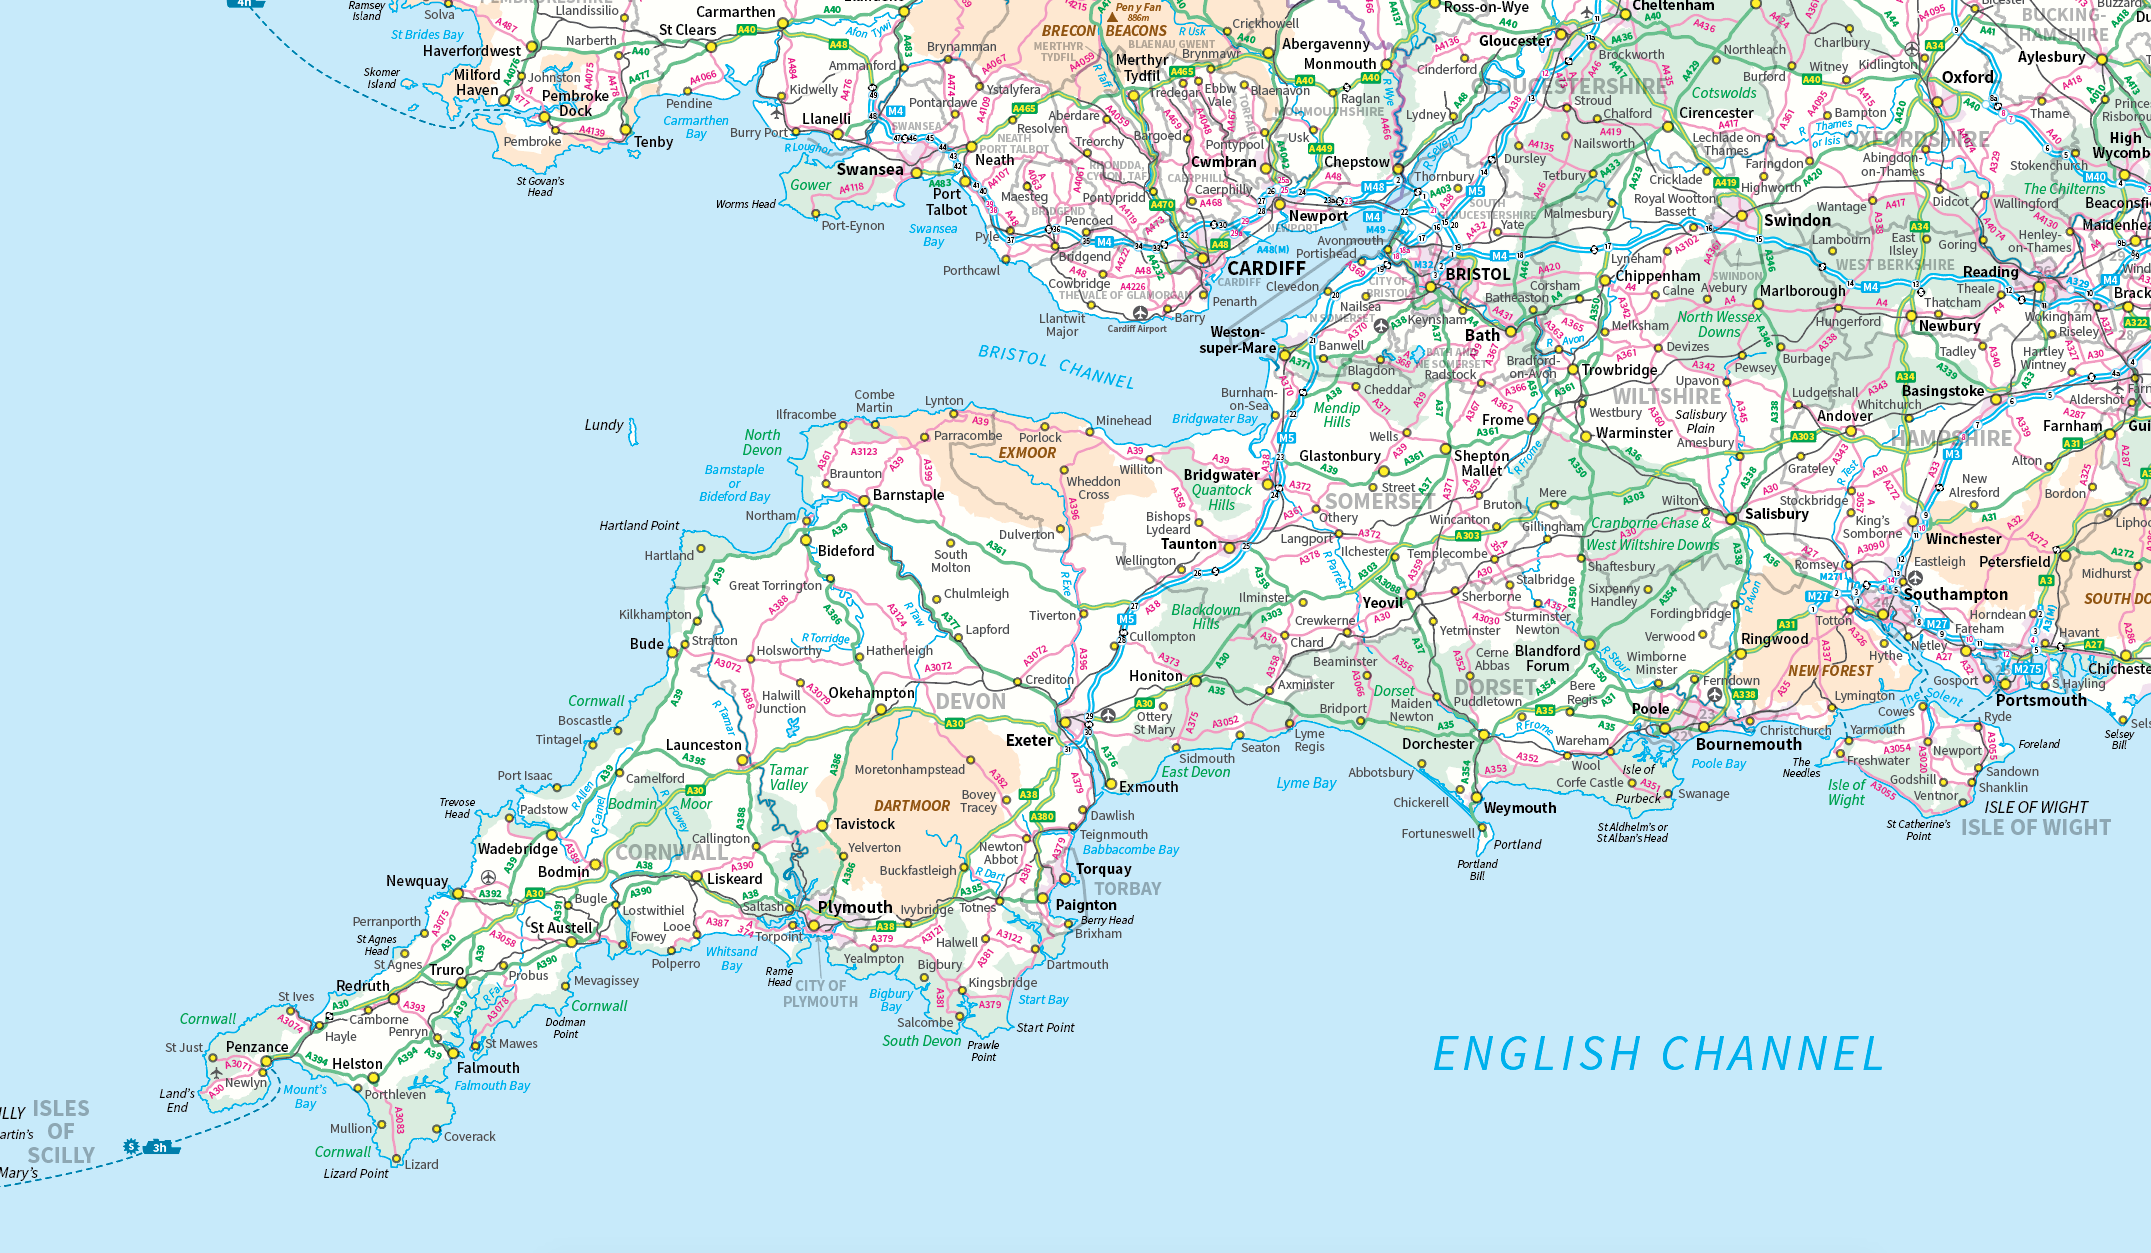 West cities south england Bristol